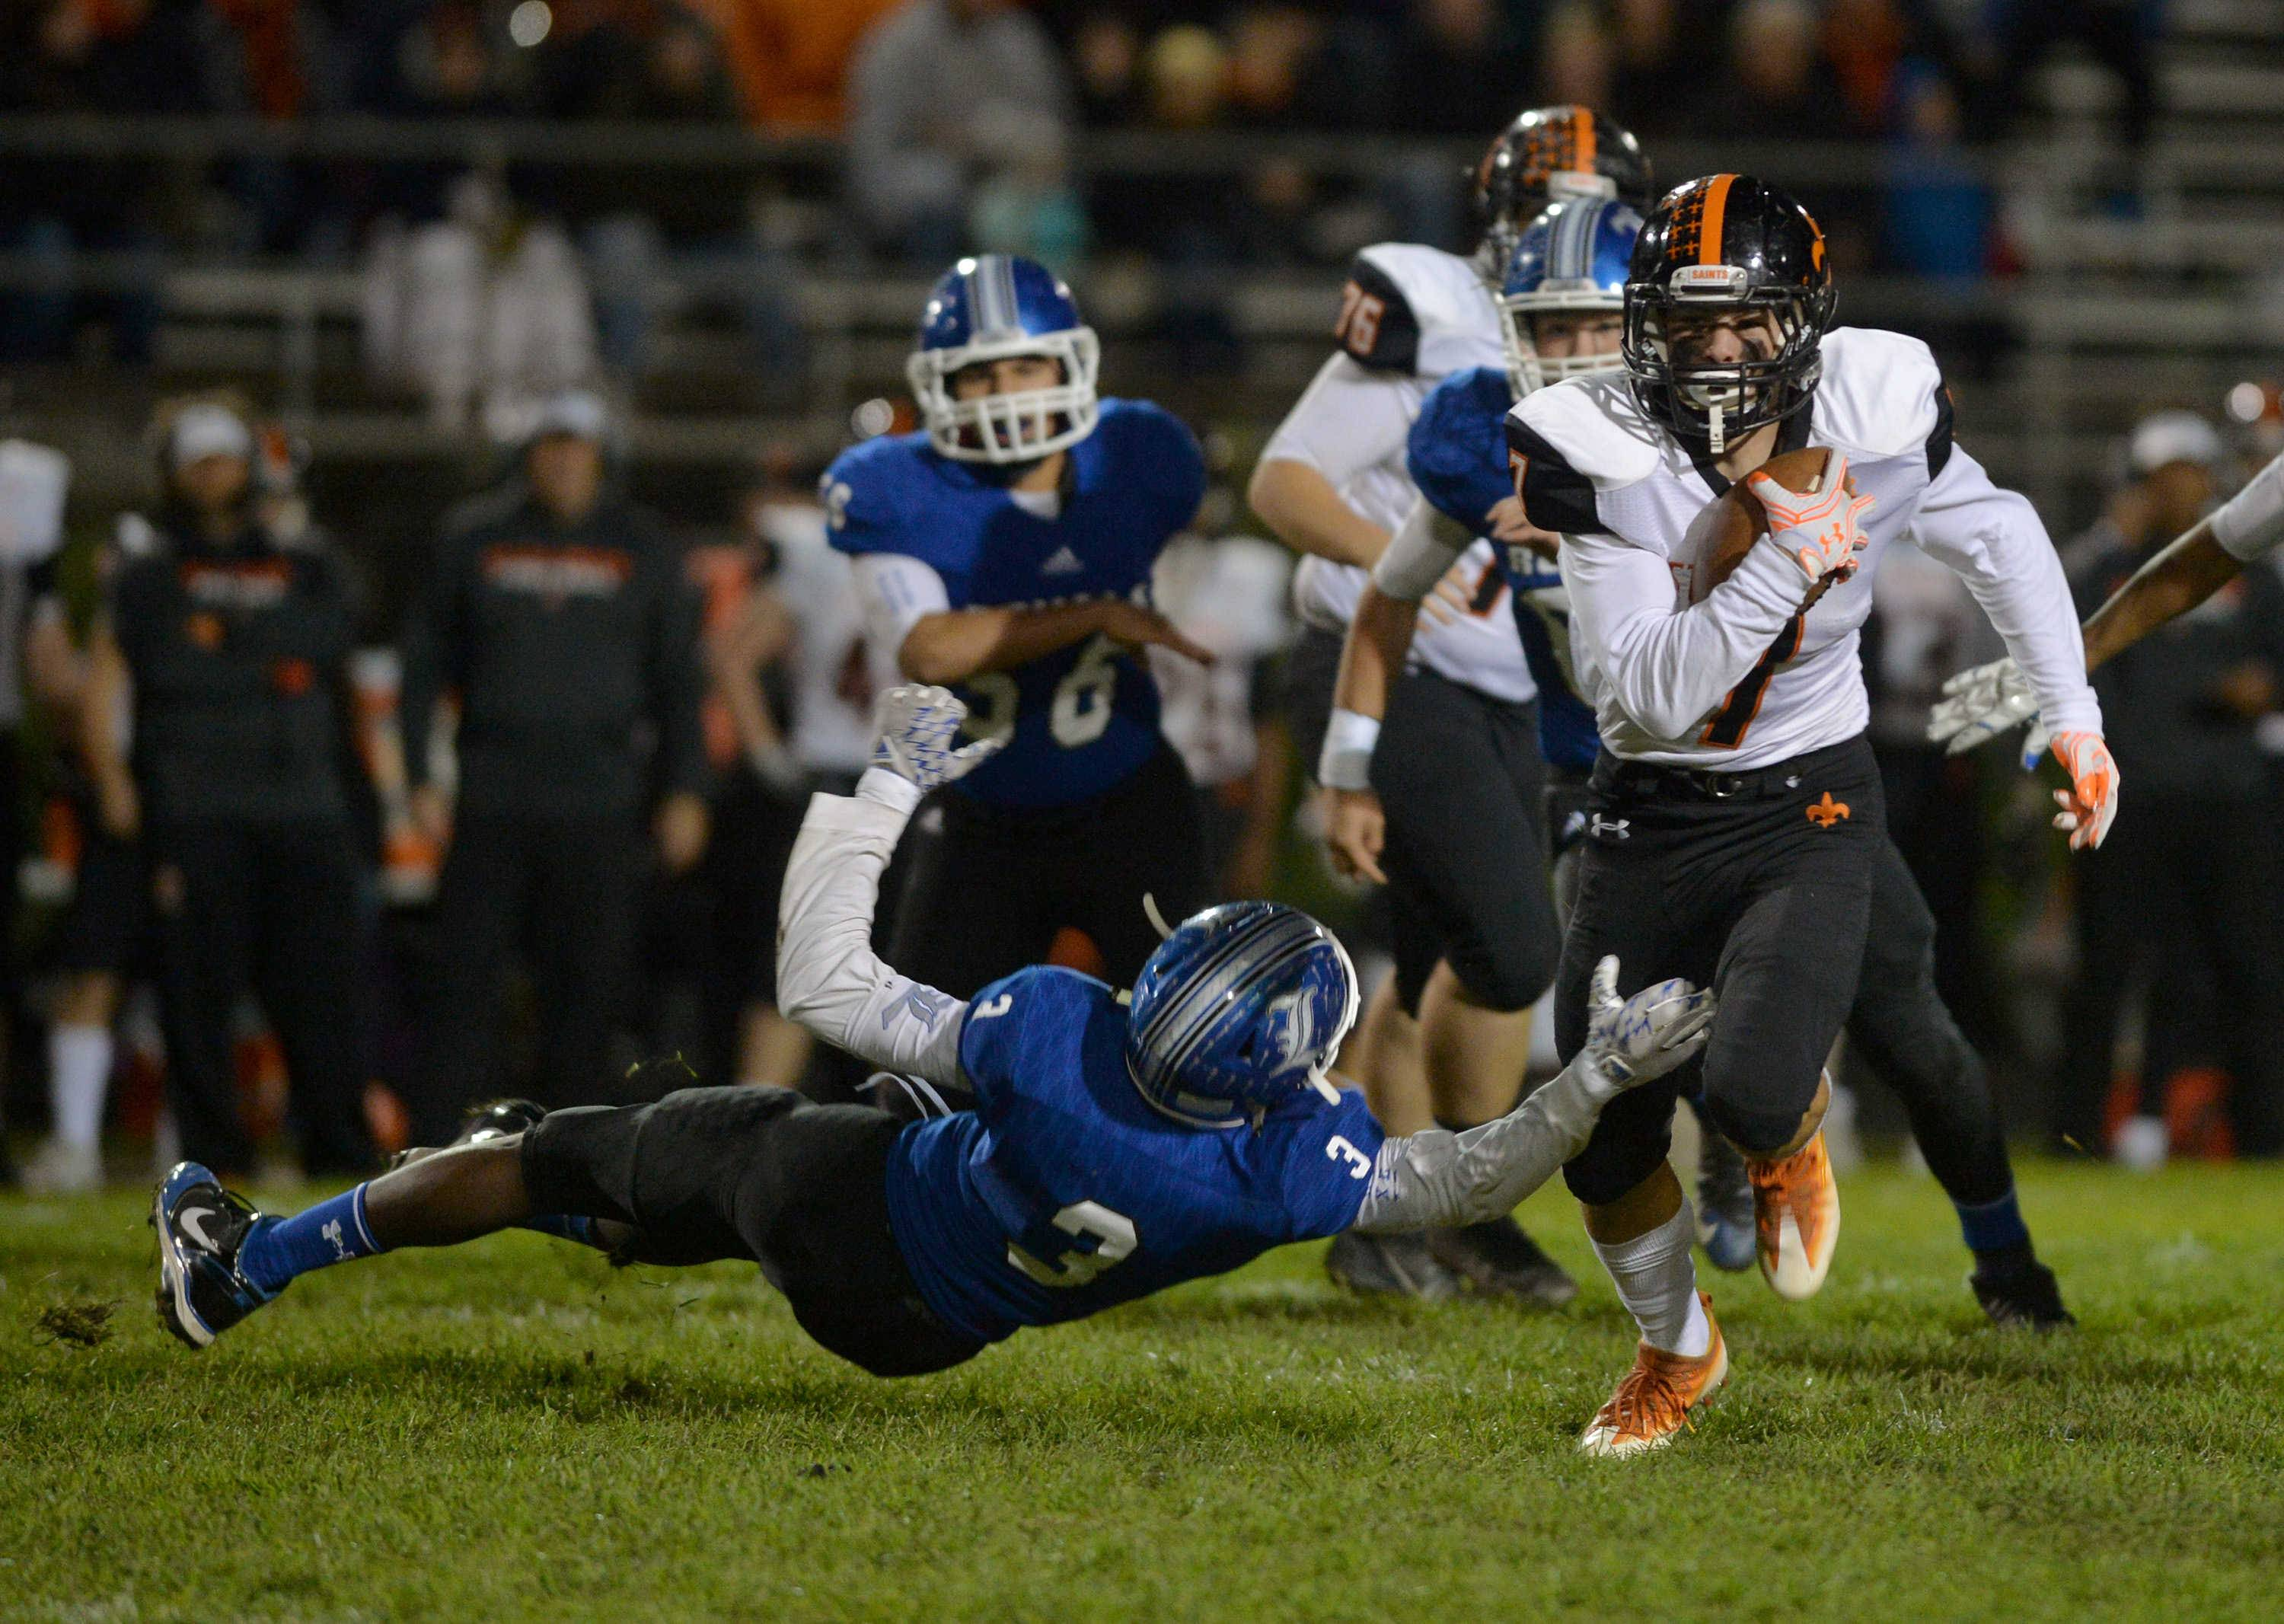 St. Charles East running back Nicholas Garlisch tries to shake Larkin defensive back Elijah Hernanez in the first quarter of their Upstate Eight contest Friday night at Memorial Field in Elgin.